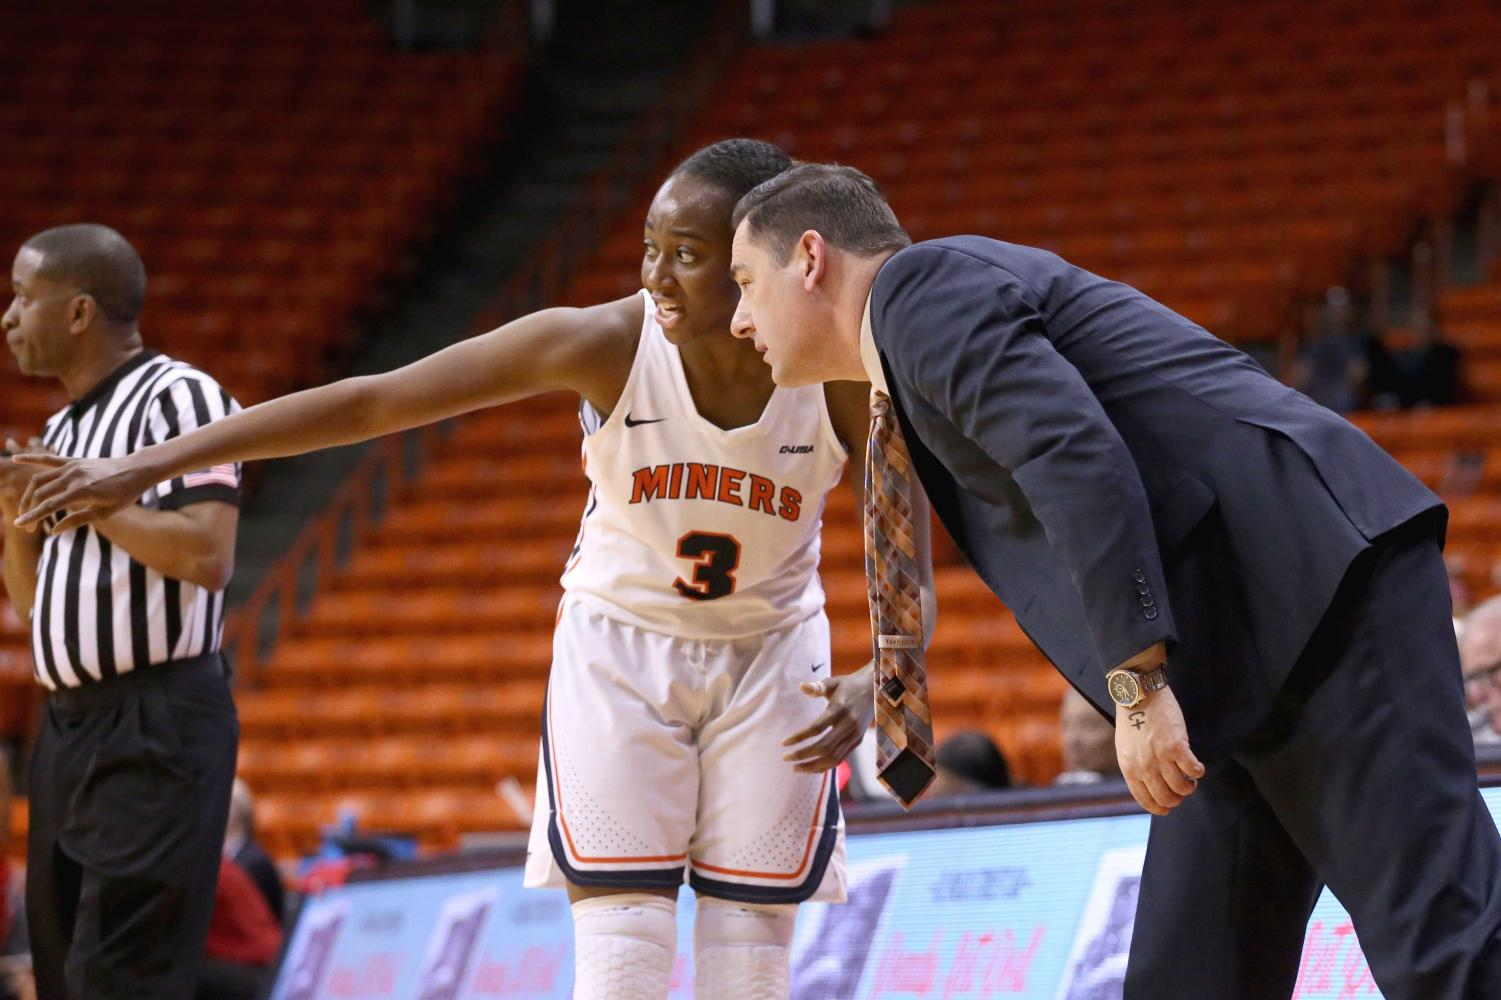 Head+Coach+Kevin+Baker+talks+to+junior+guard%2Fforward+Jordan+Alexander+about+attacking+the+WKU+defense+on+Saturday%2C+March+3+at+the+Don+Haskins+Center.